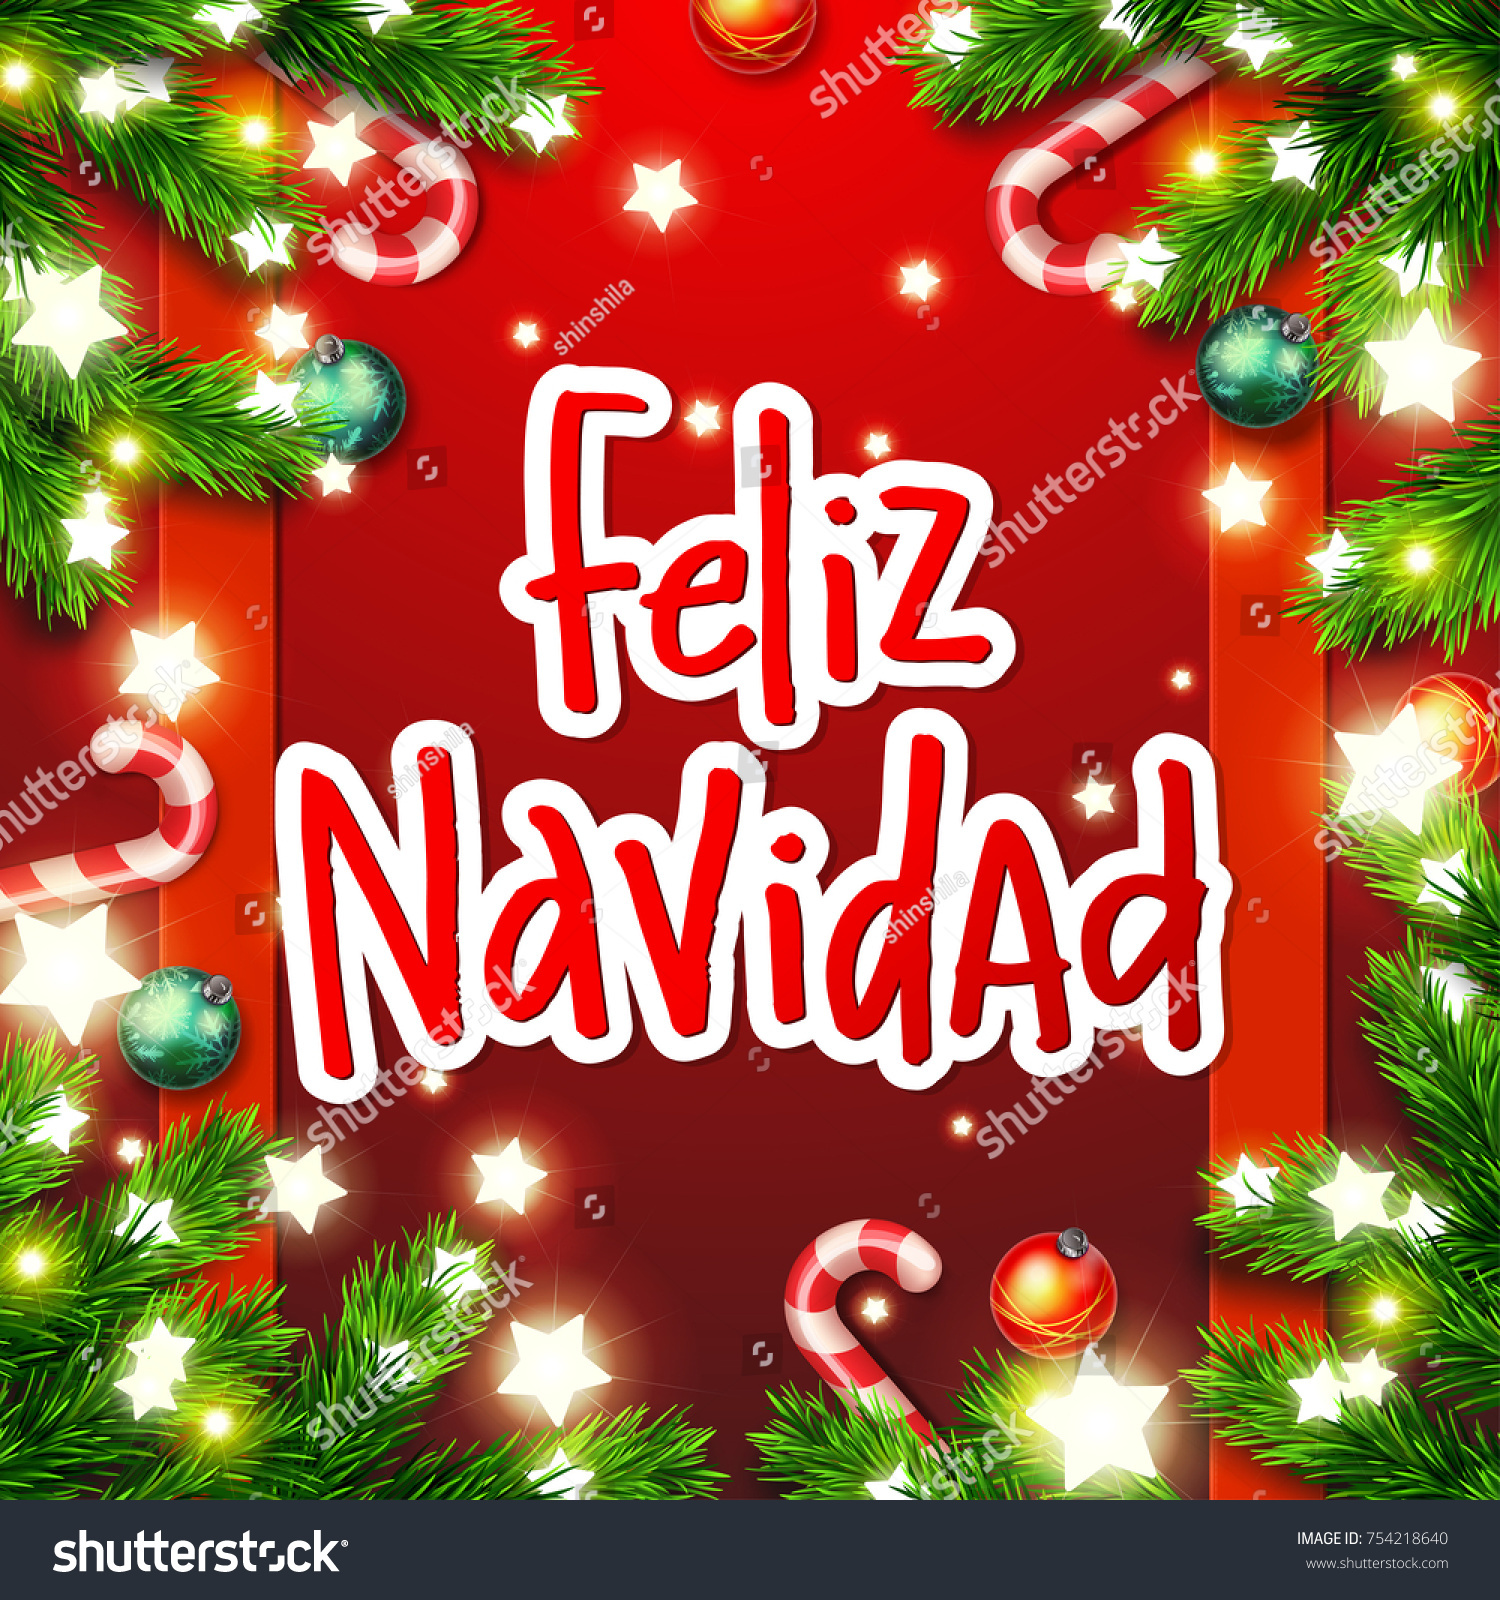 hand drawn calligraphy merry christmas in spanish language feliz navidad concept handwritten